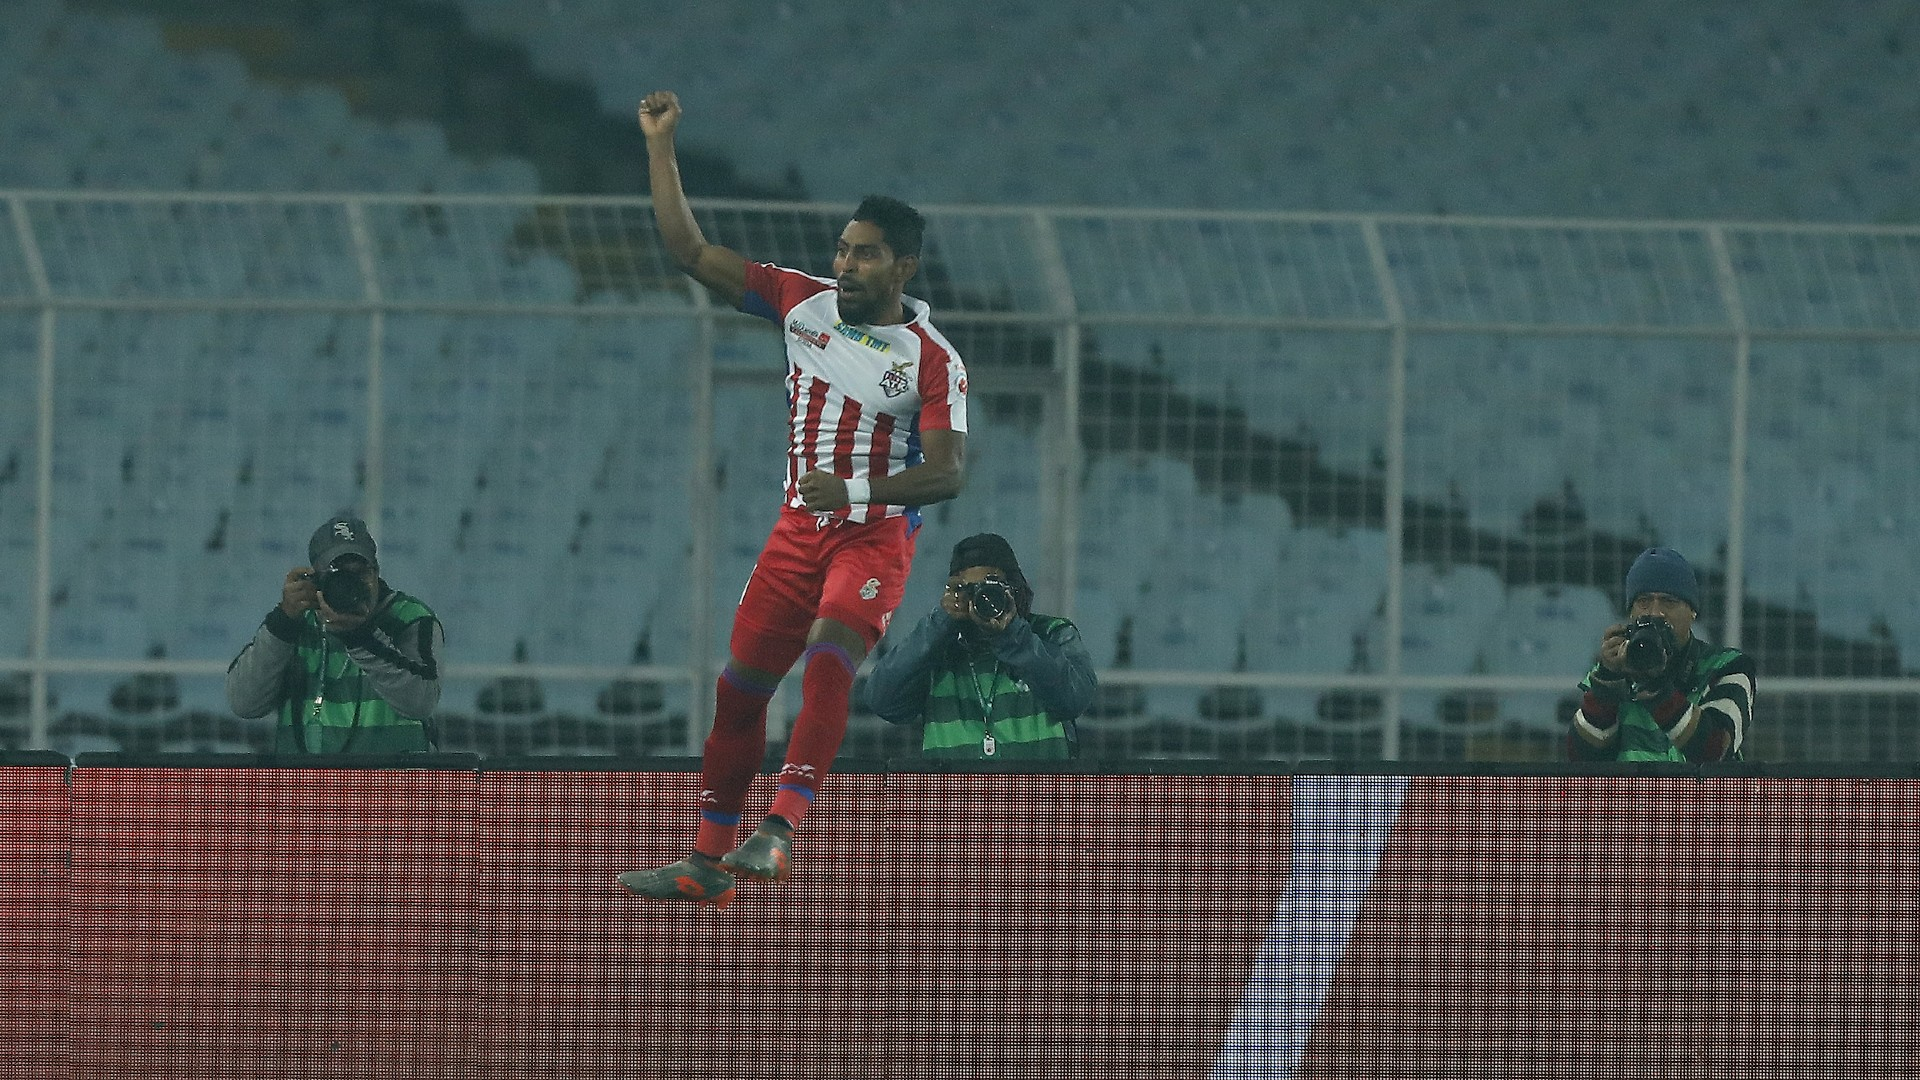 Antonio Habas: The Kolkata Derby will further enhance the attraction of ISL